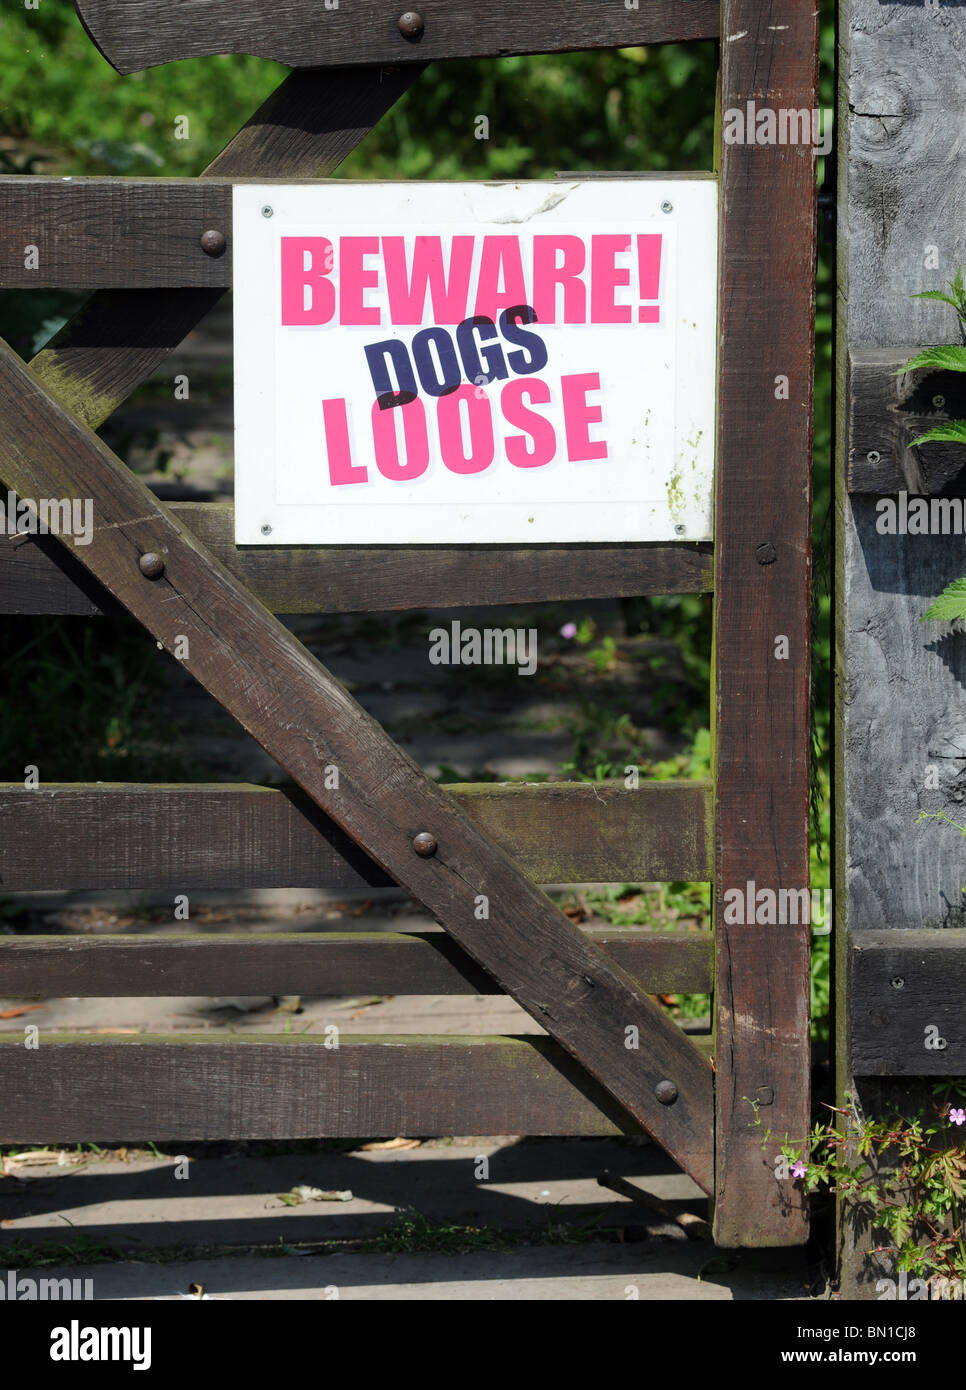 'BEWARE DOGS LOOSE' SIGN ON GATE UK - Stock Image